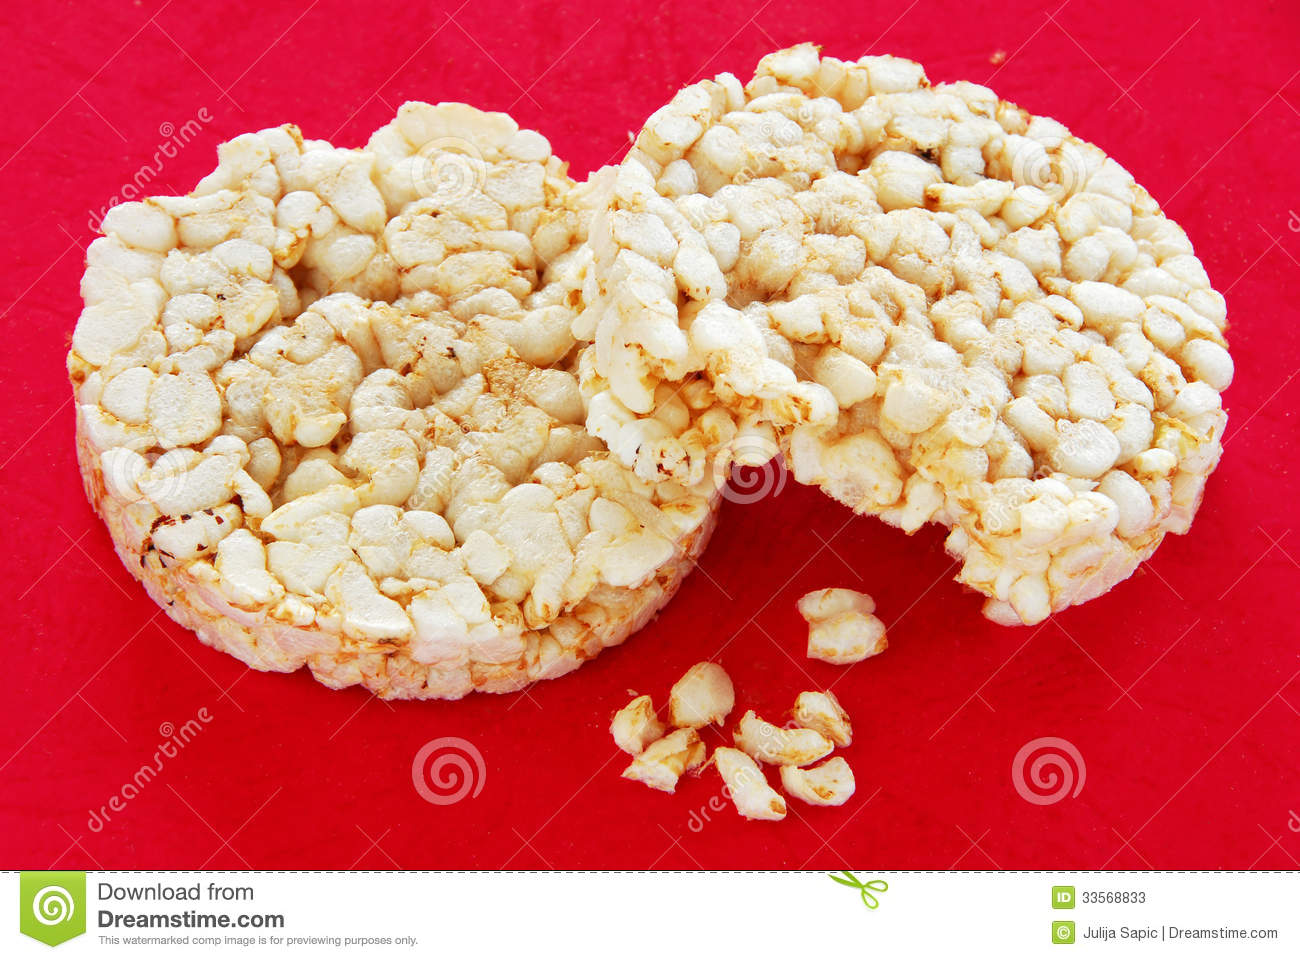 How To Make Puffed Rice Cakes At Home